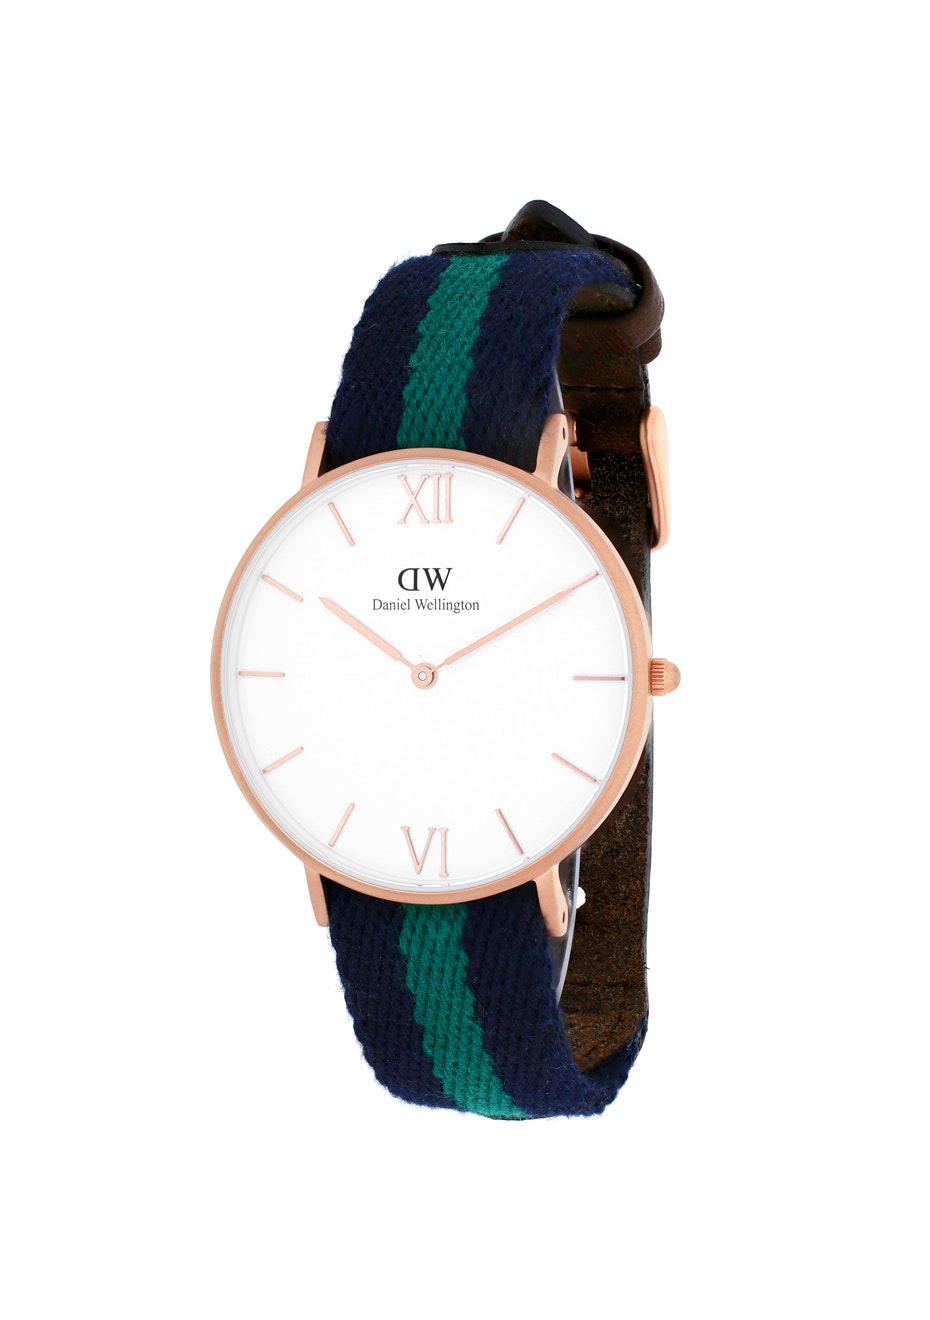 Daniel Wellington Women's Grace Warwick - White/Two-tone Navy B